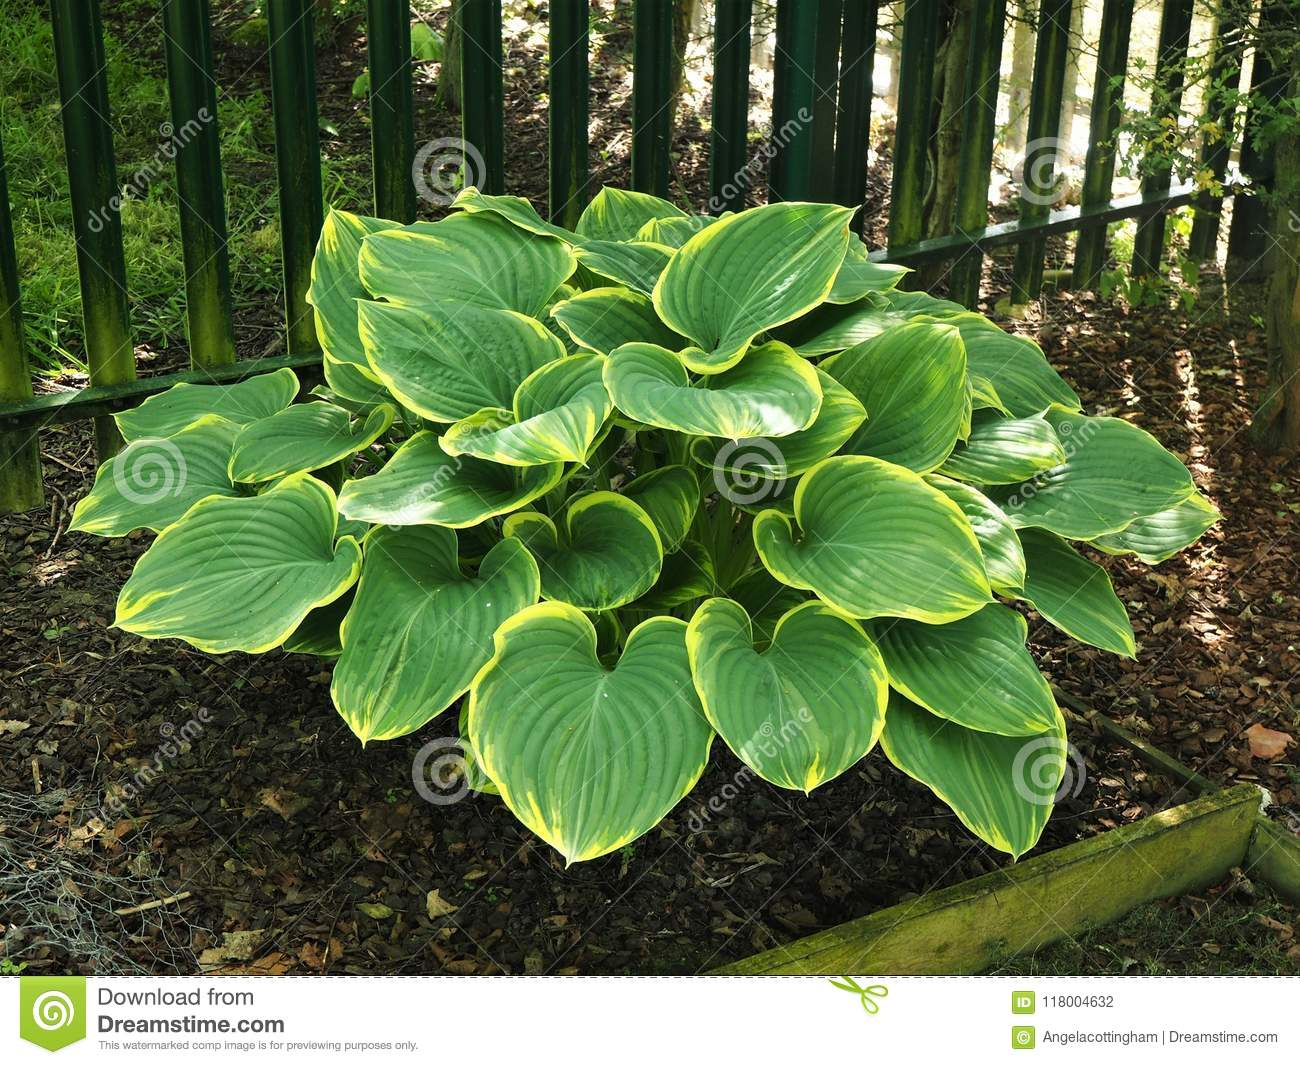 Impressive Hosta Plant With Beautiful Variegated Leaves Stock Photo